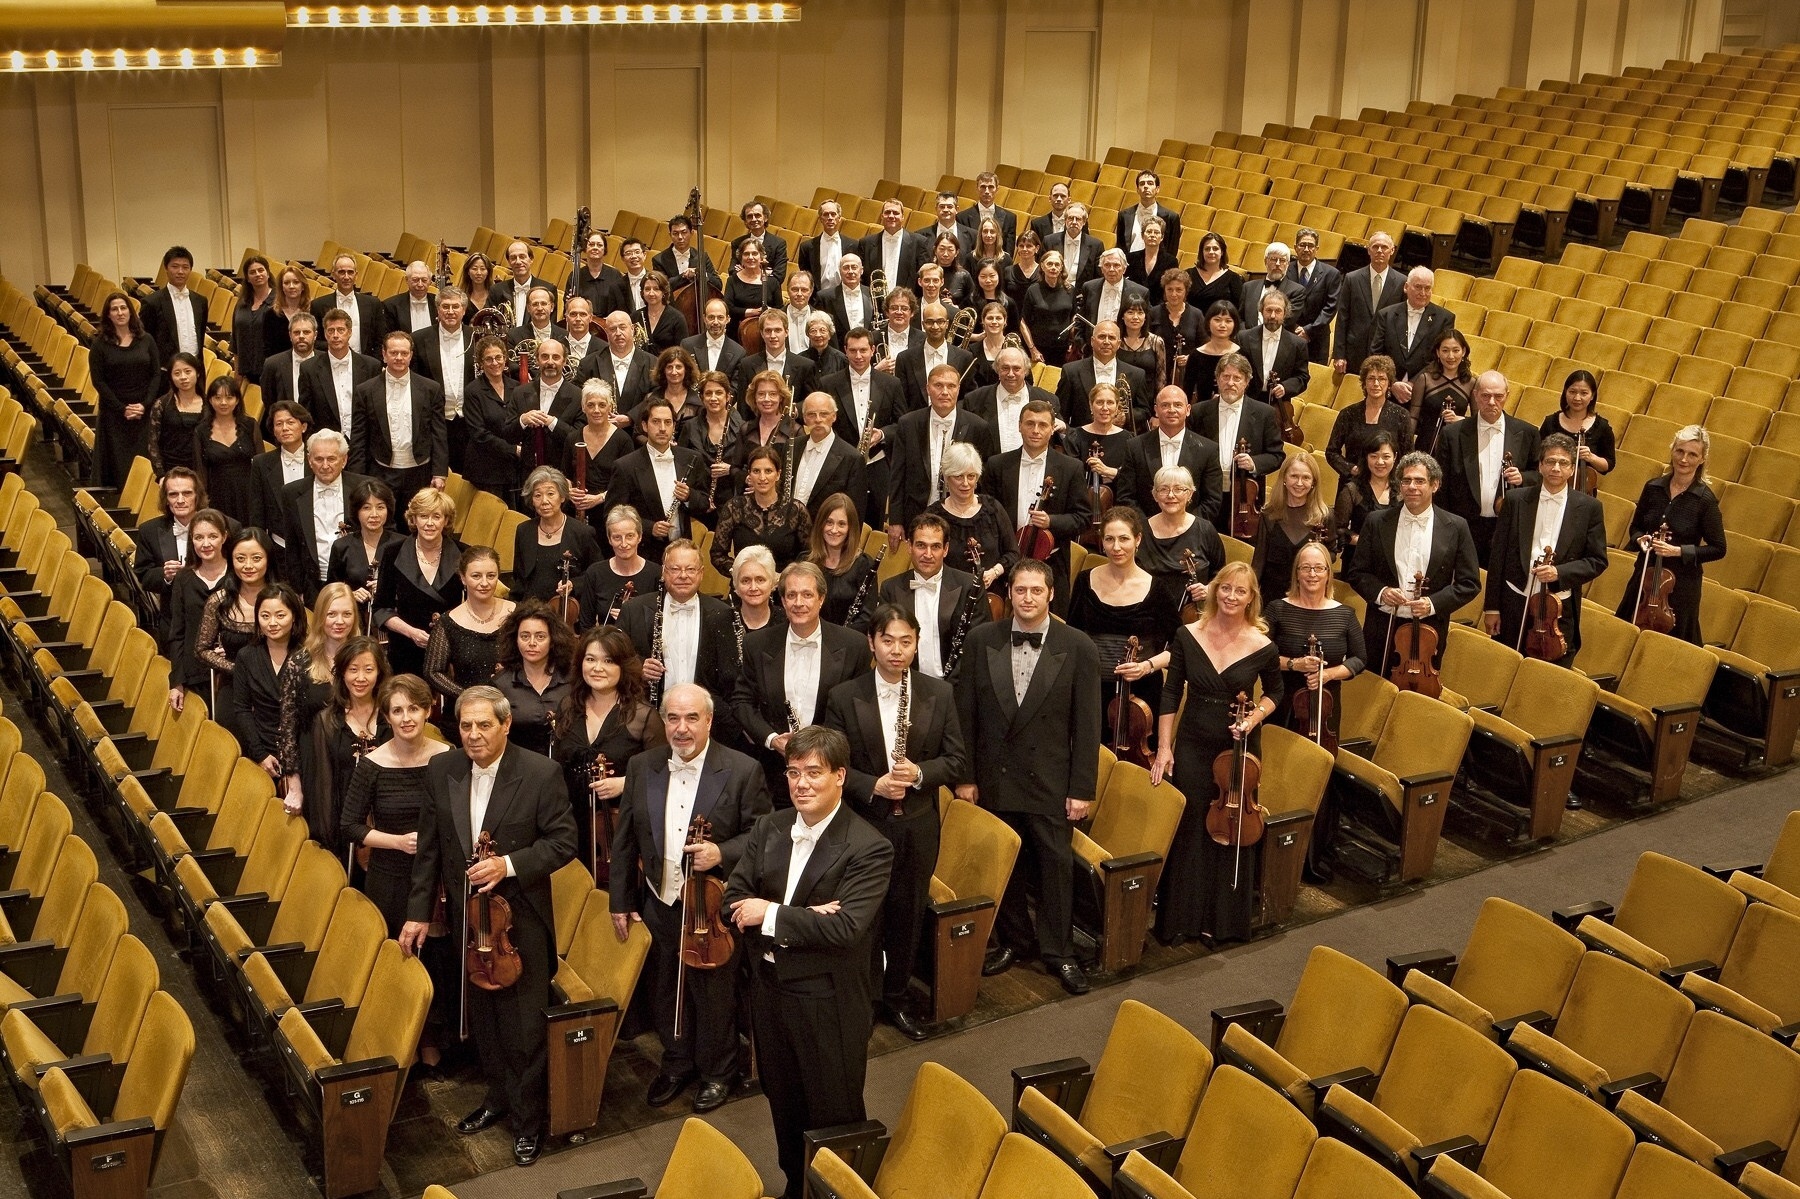 Bild: New York Philharmonic